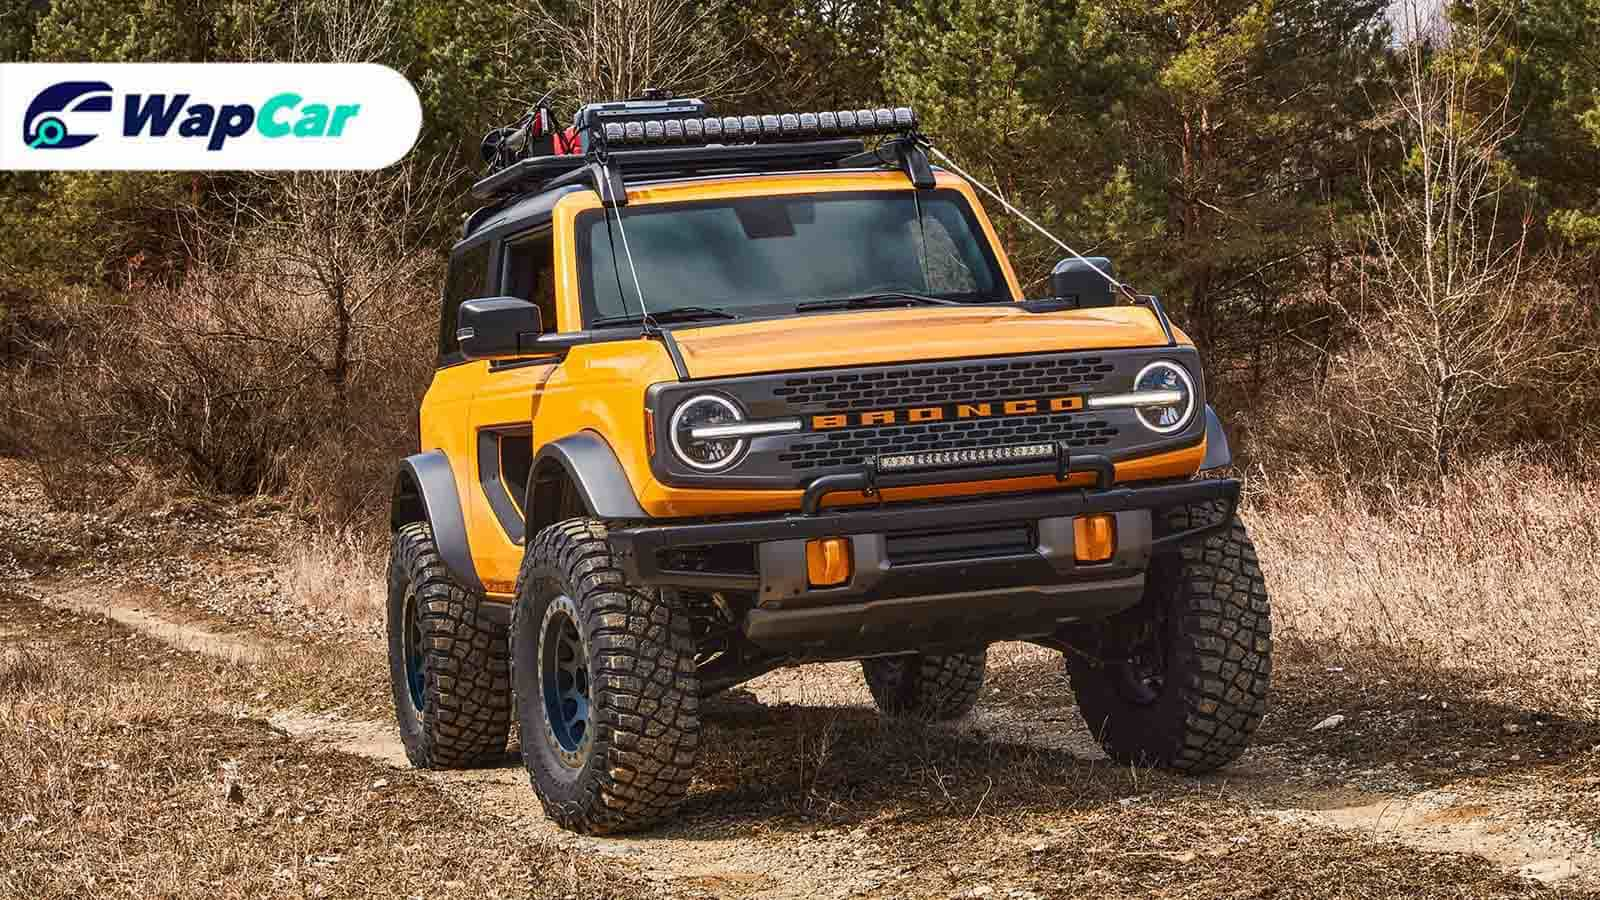 2021 Ford Bronco looks set to wrangle the competition 01